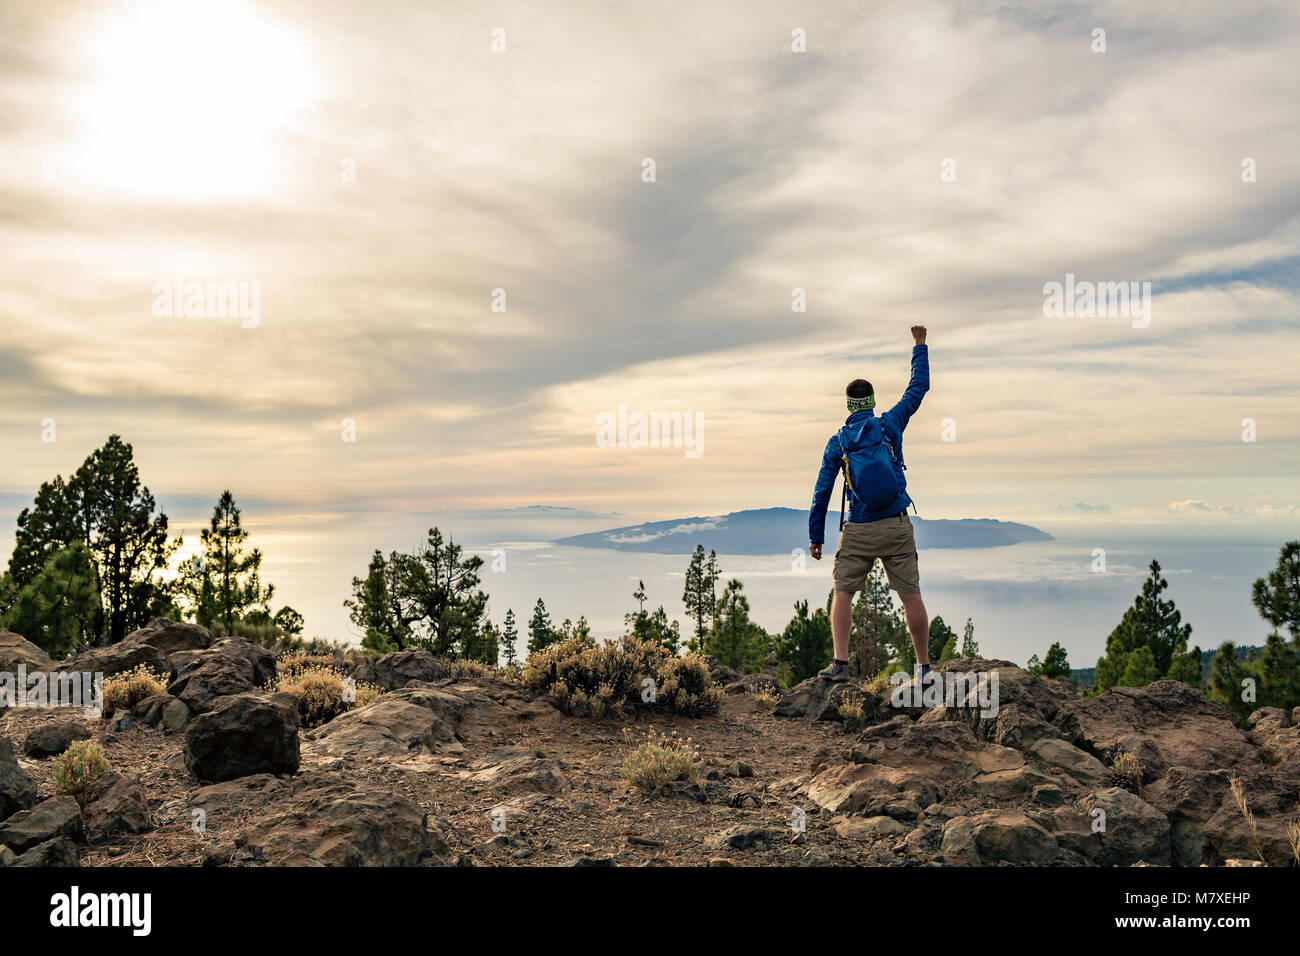 Man celebrating sunset looking at view in mountains. Trail runner, hiker or climber reached top of a mountain, enjoy - Stock Image